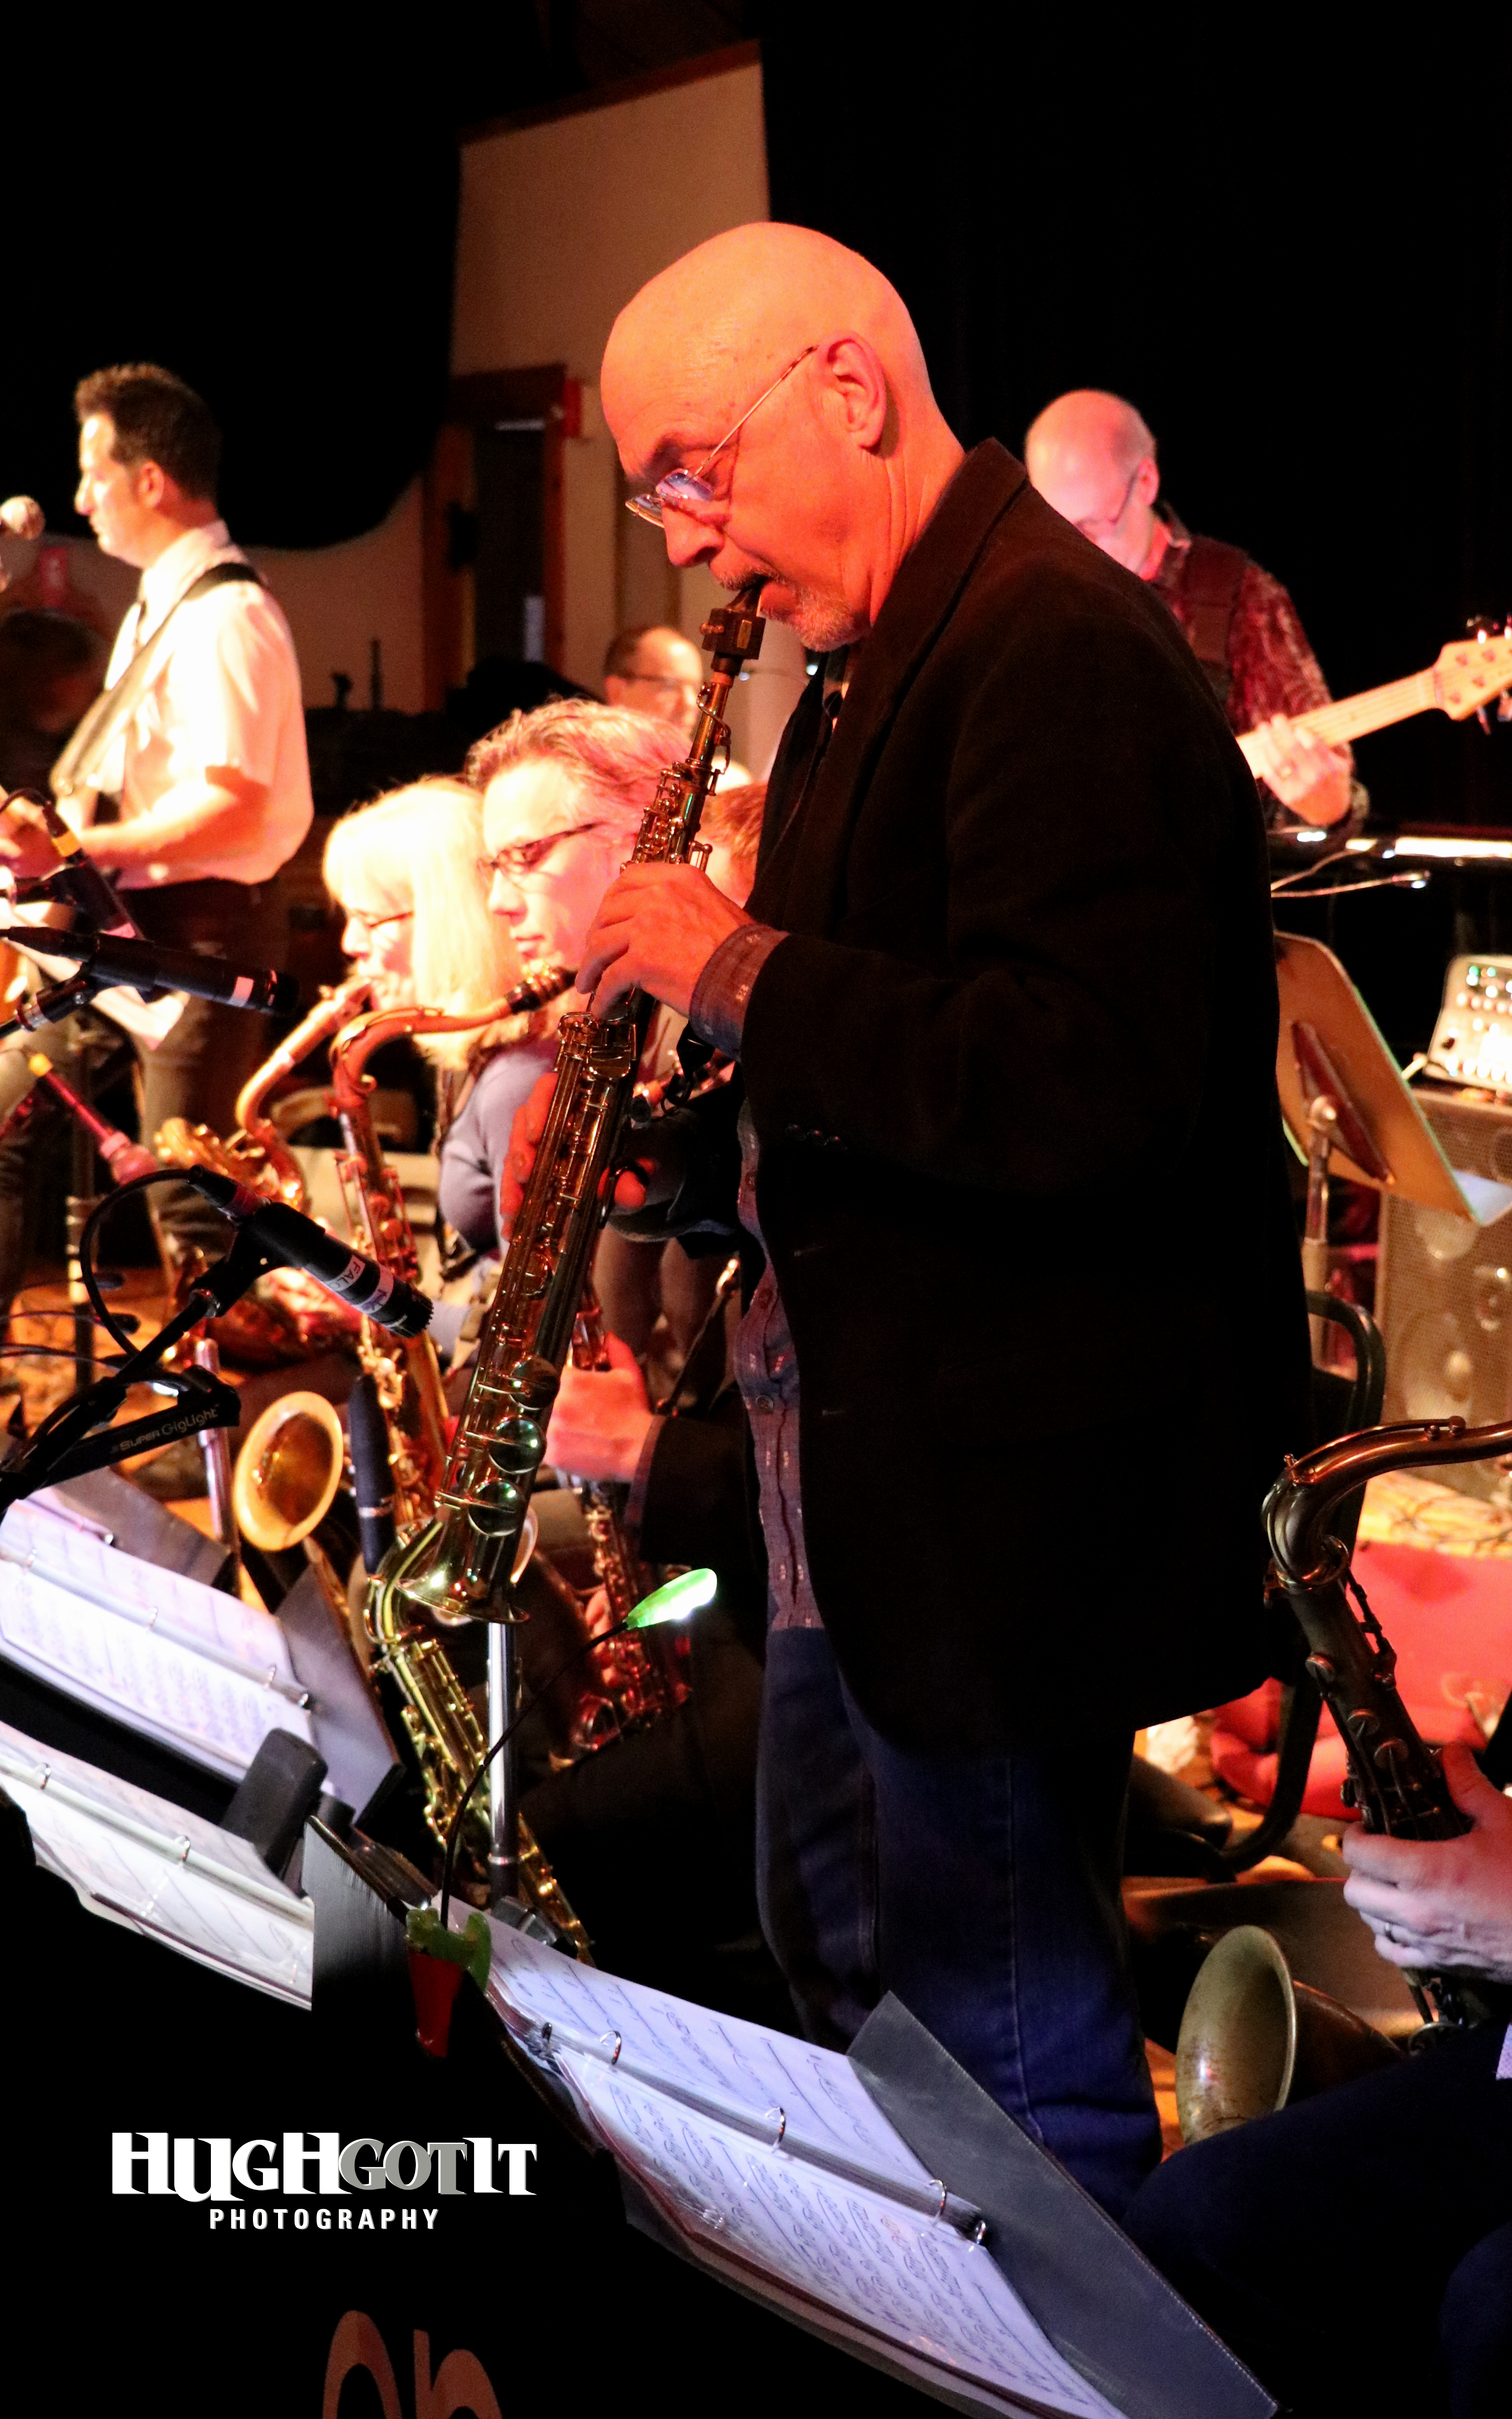 ed-palermo-big-band-2018-04-21-the-falcon_40745188215_o